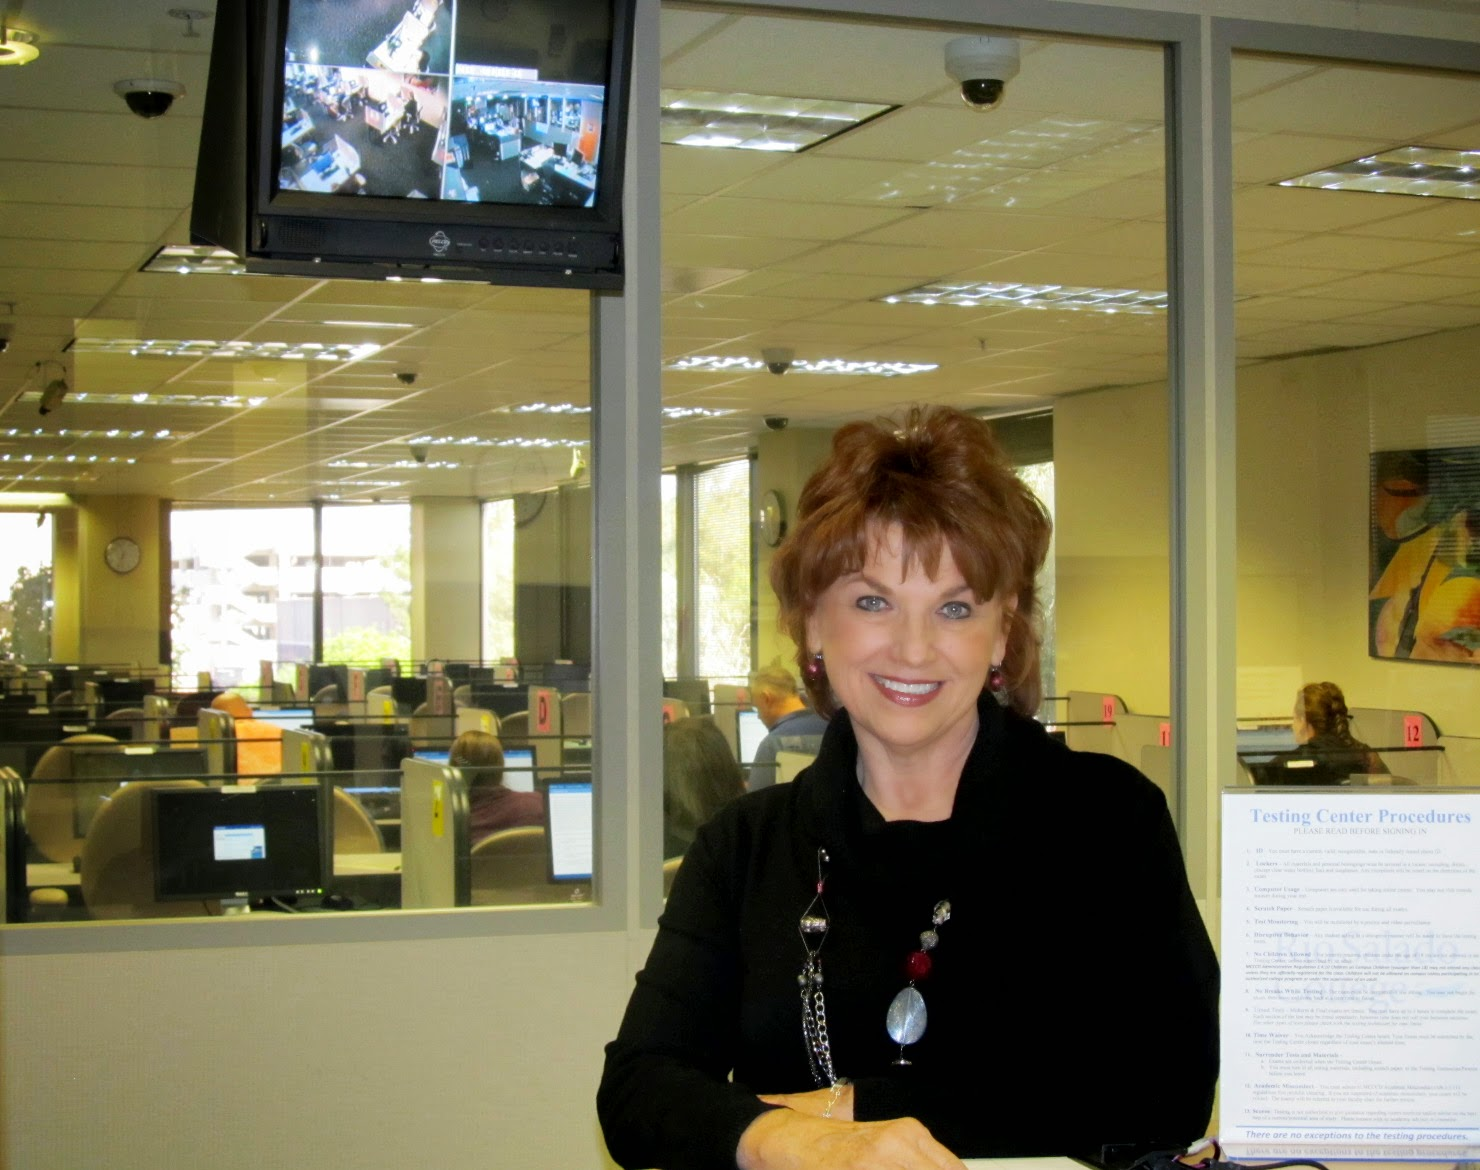 photo of Linda Lukey at testing center in Tempe